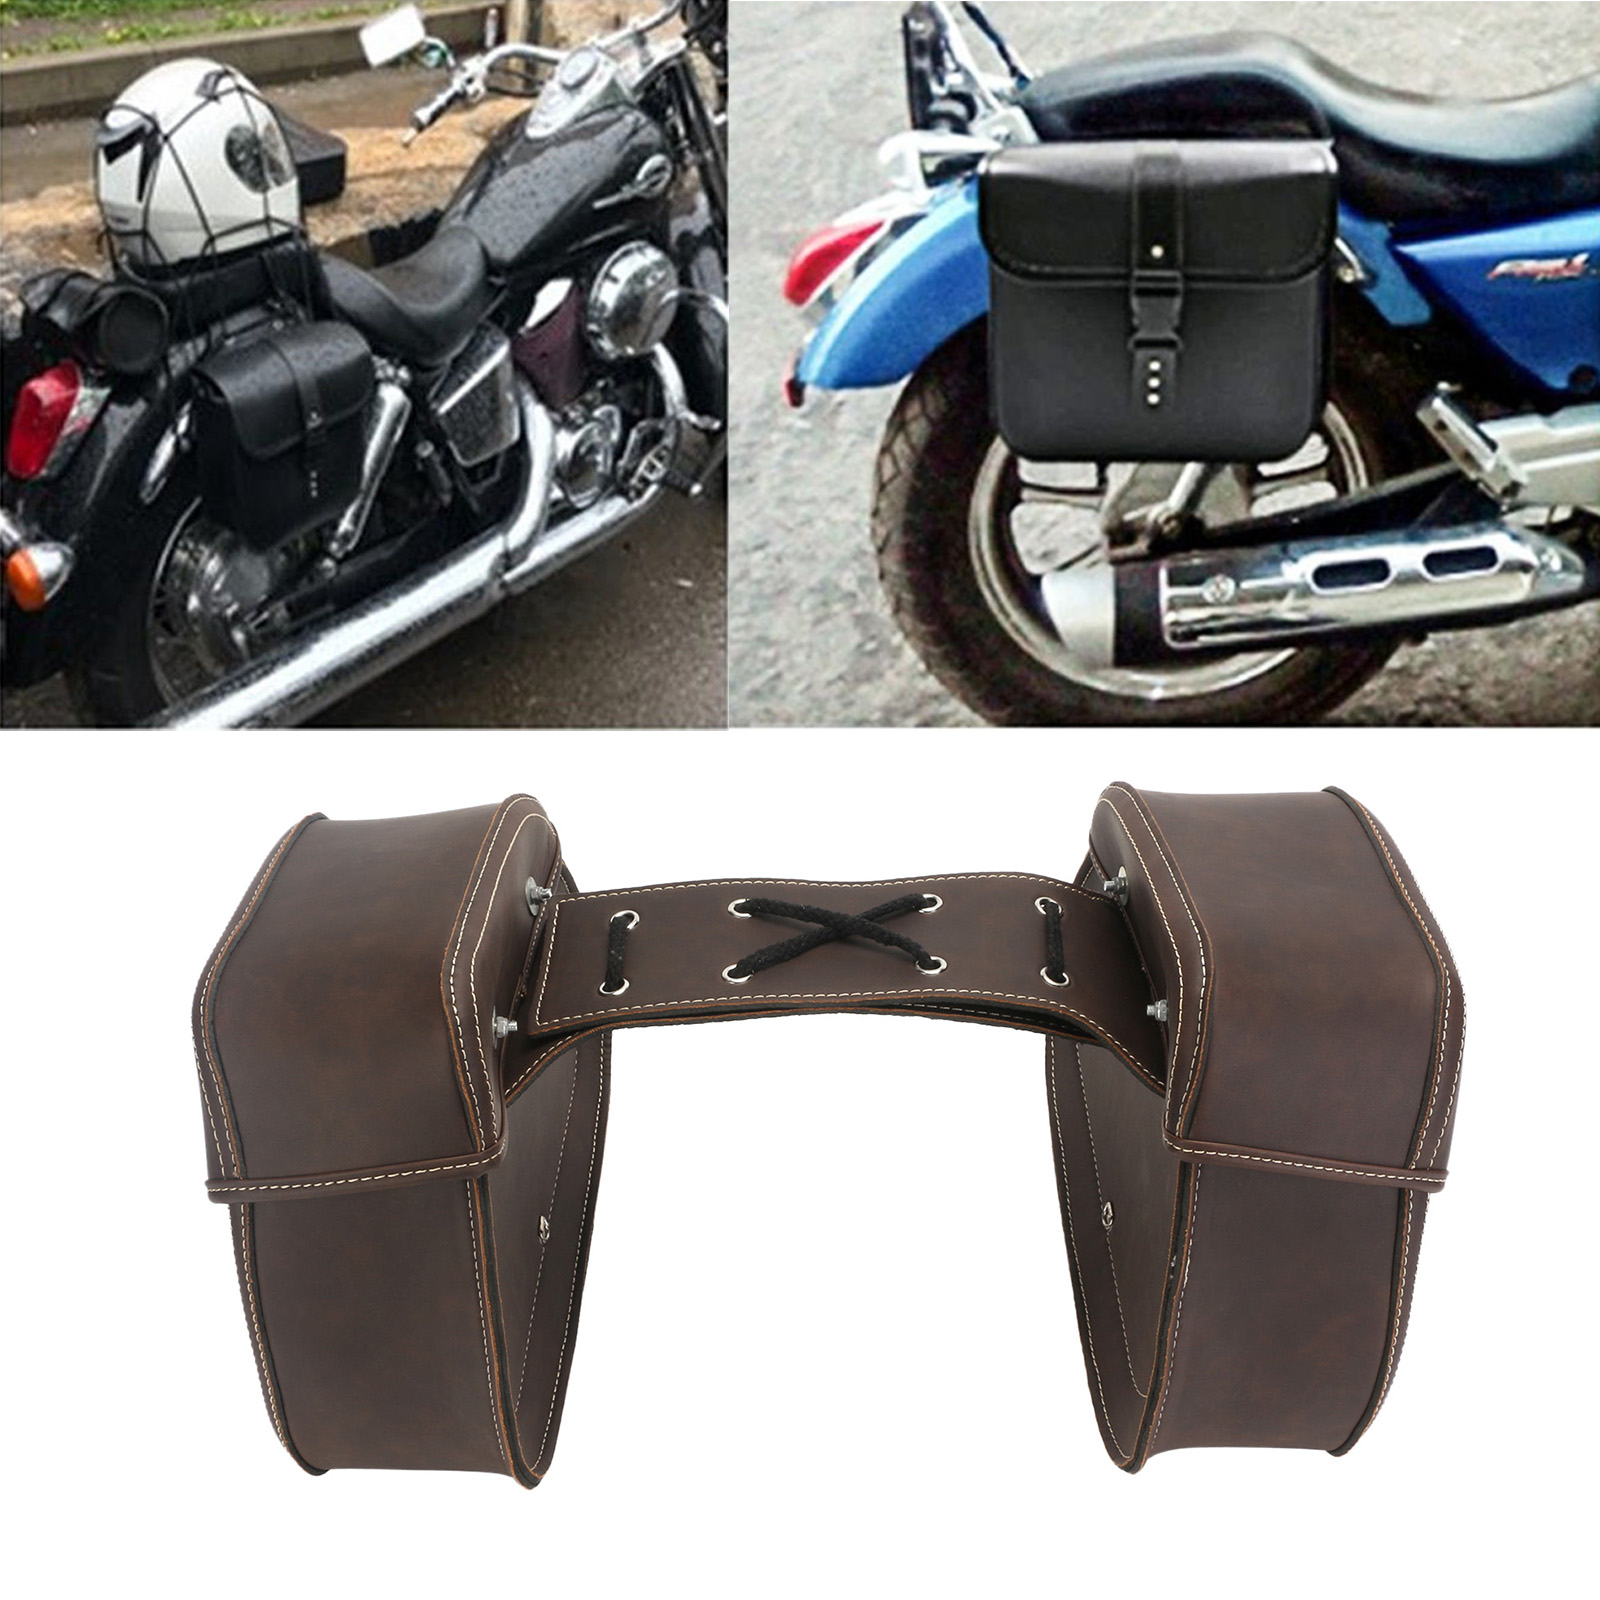 pu leather motorcycle luggage saddle side bags for harley davidson